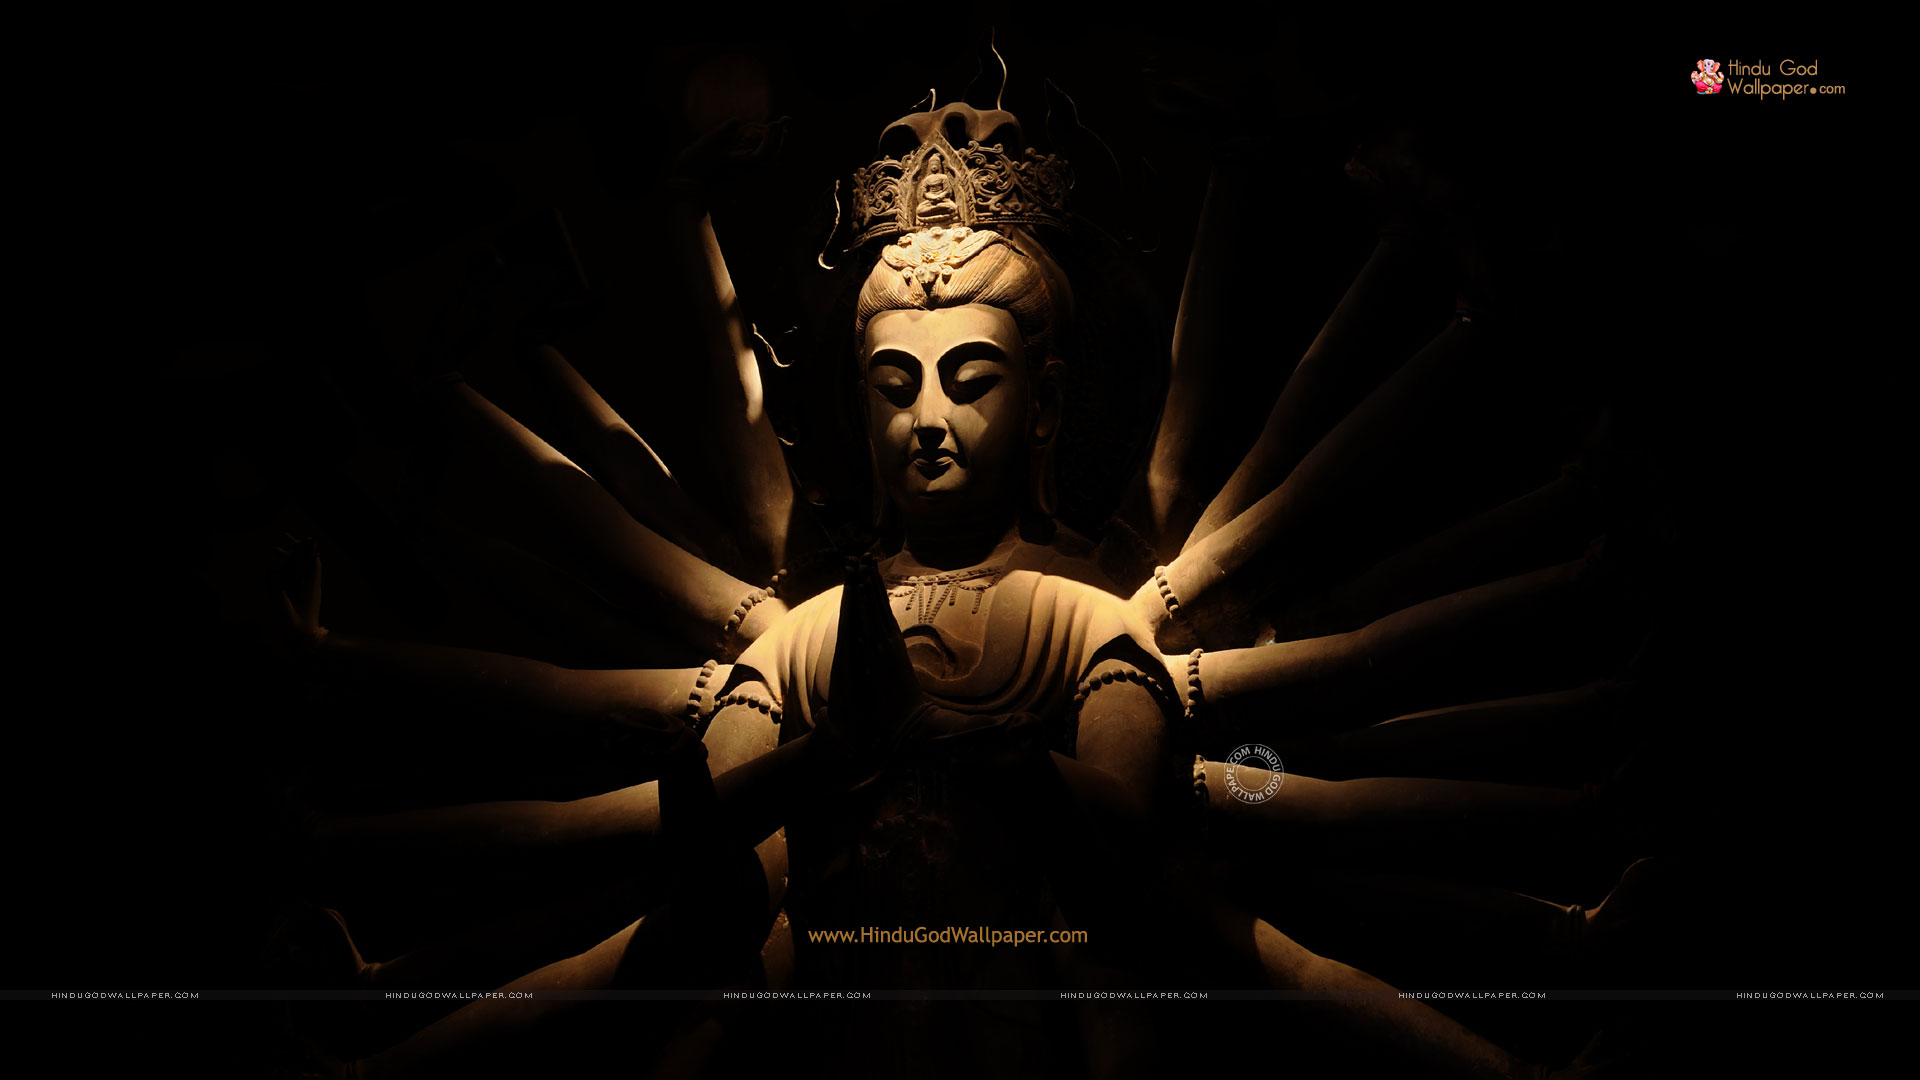 gautam buddha images, lord buddha photos, pics & hd wallpapers